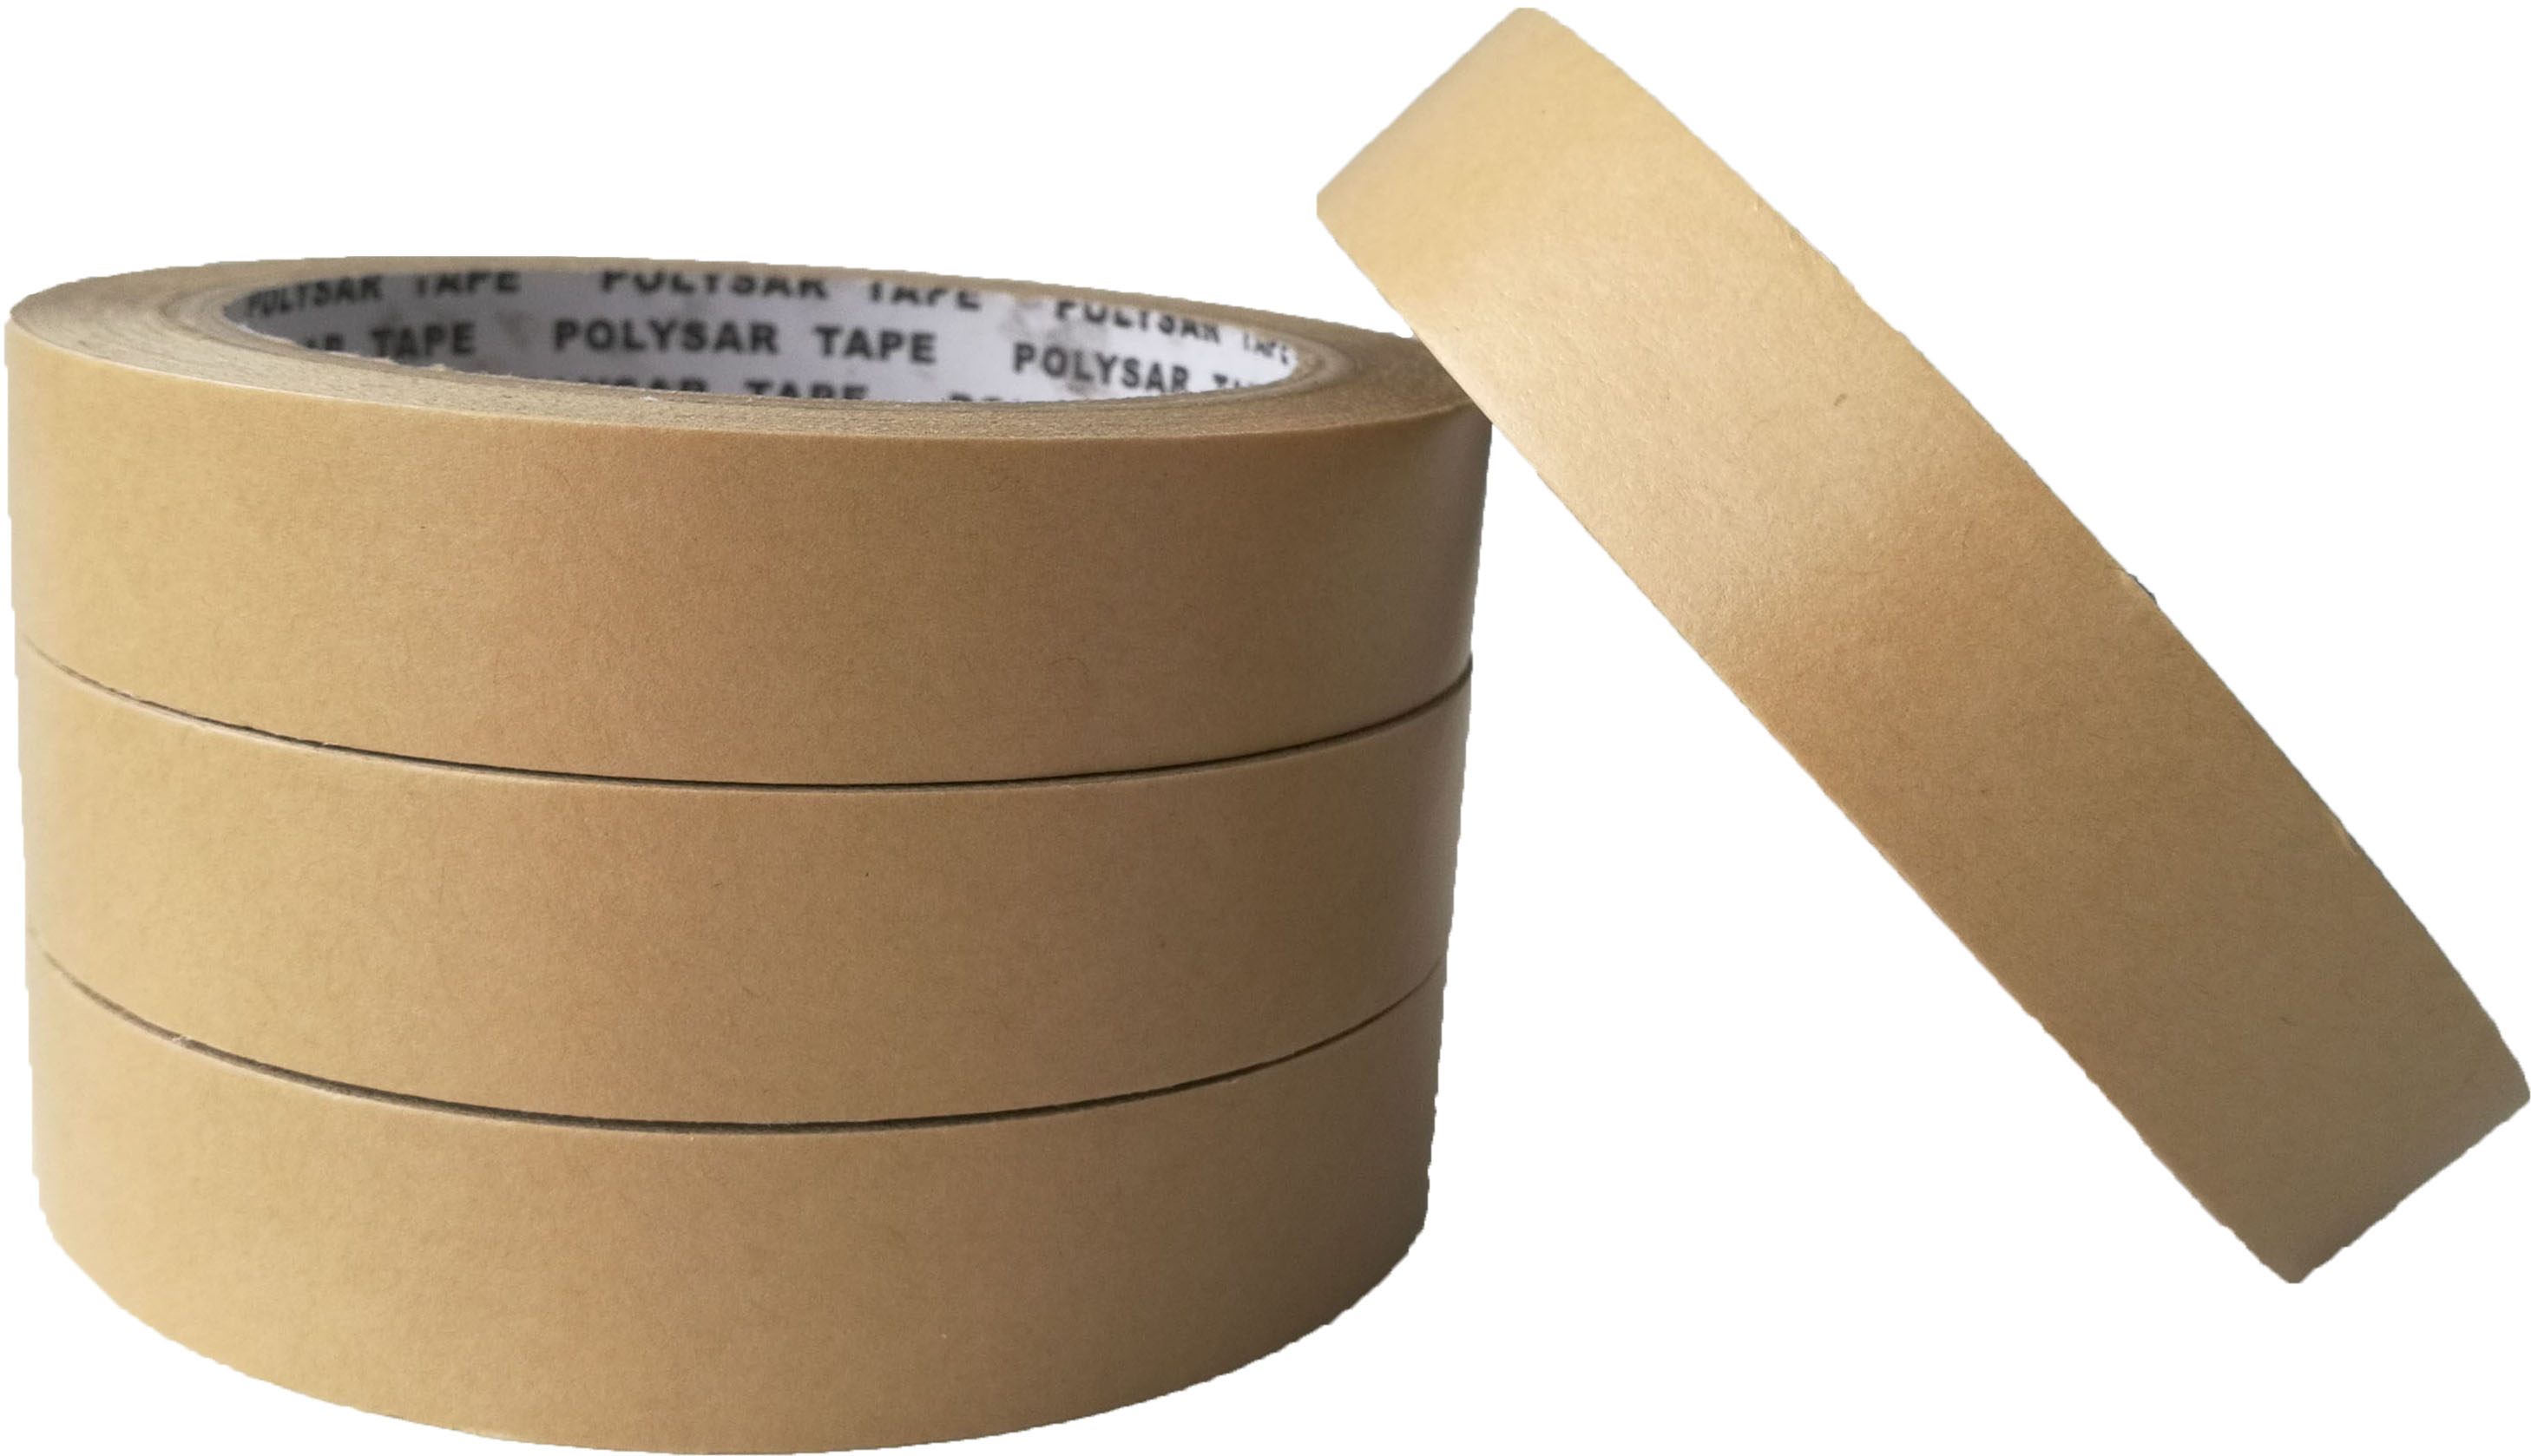 No carrier material transfer Tapes